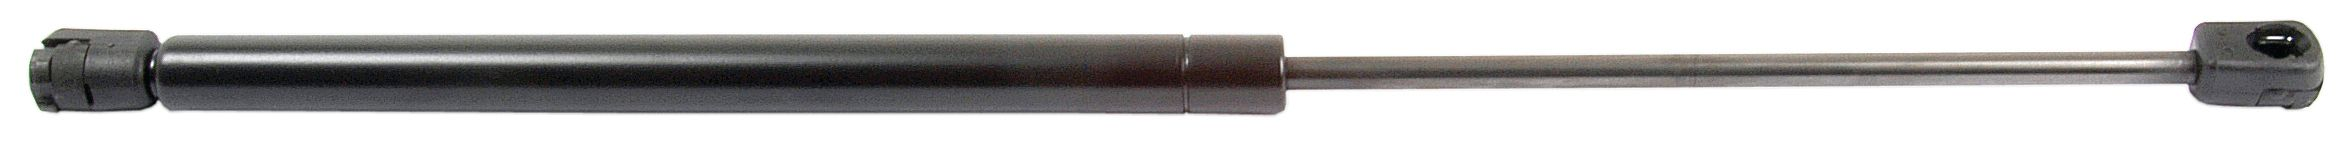 FORD NEW HOLLAND GAS STRUT 54535